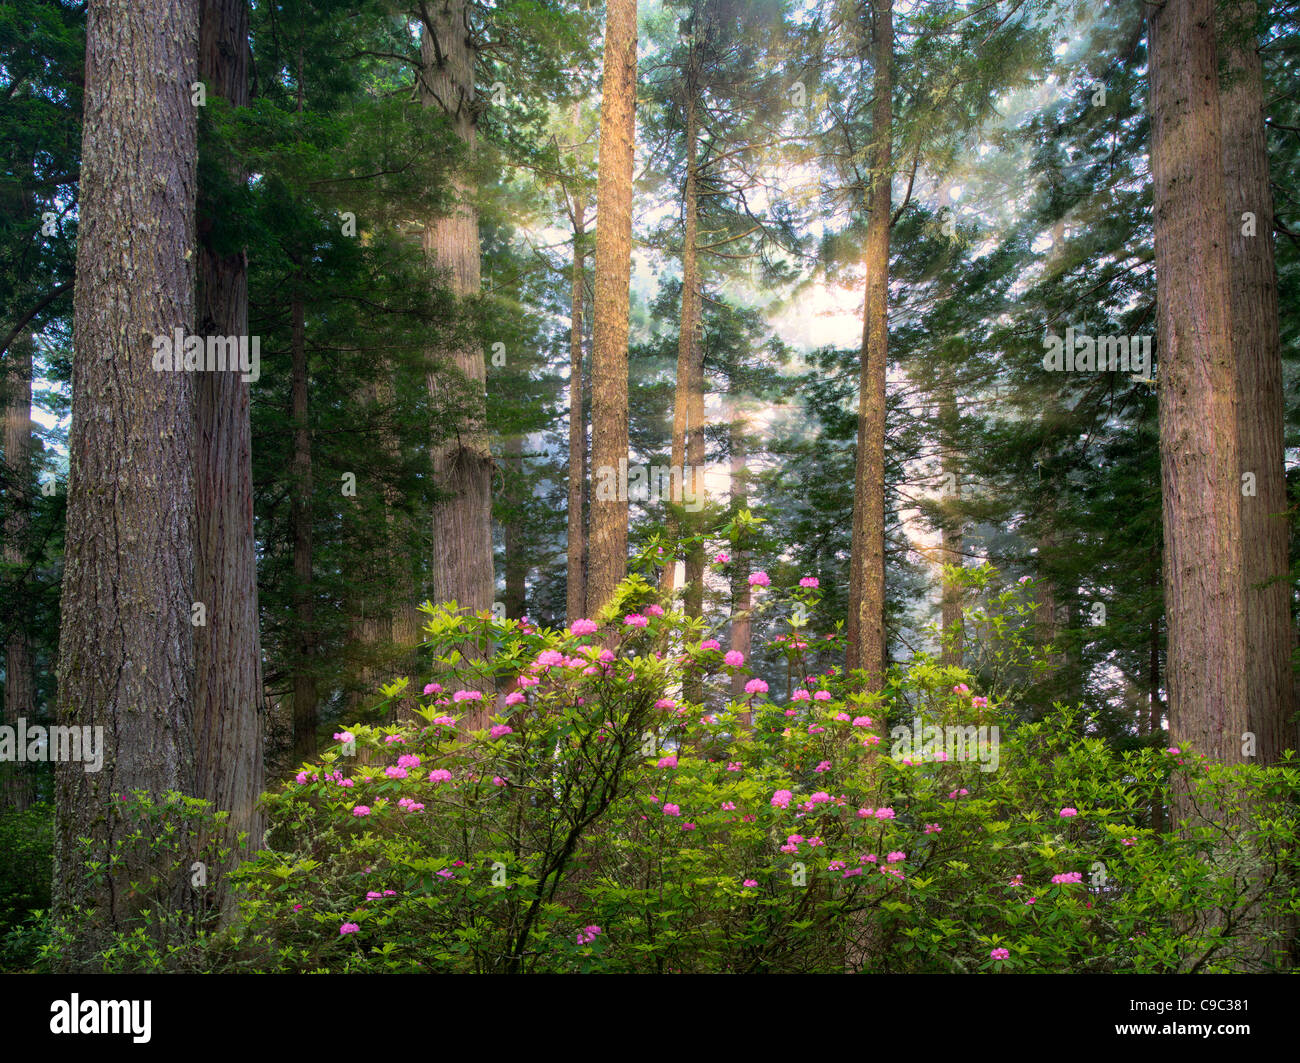 Redwood trees and blooming rhododendrons. Redwood National Park, California Light rays have been added - Stock Image